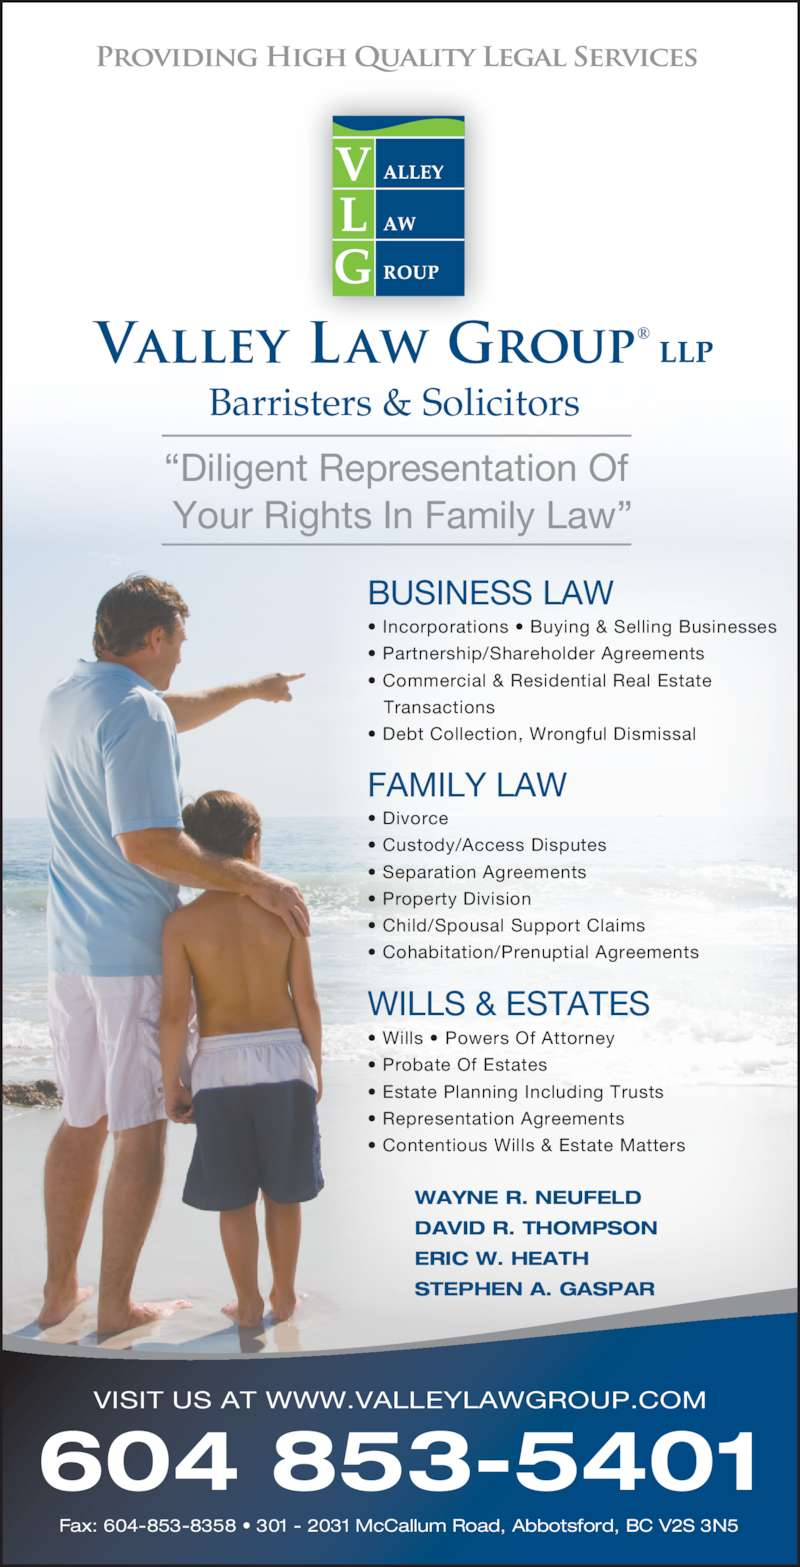 """Valley Law Group LLP (6048535401) - Display Ad - Your Rights In Family Law"""" WAYNE R. NEUFELD DAVID R. THOMPSON ERIC W. HEATH STEPHEN A. GASPAR • Incorporations • Buying & Selling Businesses • Partnership/Shareholder Agreements • Commercial & Residential Real Estate  Transactions • Debt Collection, Wrongful Dismissal BUSINESS LAW • Wills • Powers Of Attorney • Probate Of Estates • Estate Planning Including Trusts   • Representation Agreements • Contentious Wills & Estate Matters WILLS & ESTATES FAMILY LAW • Divorce • Custody/Access Disputes • Separation Agreements • Property Division • Child/Spousal Support Claims • Cohabitation/Prenuptial Agreements """"Diligent Representation Of 604 853-5401 Fax: 604-853-8358 • 301 - 2031 McCallum Road, Abbotsford, BC V2S 3N5 VISIT US AT WWW.VALLEYLAWGROUP.COM Barristers & Solicitors"""